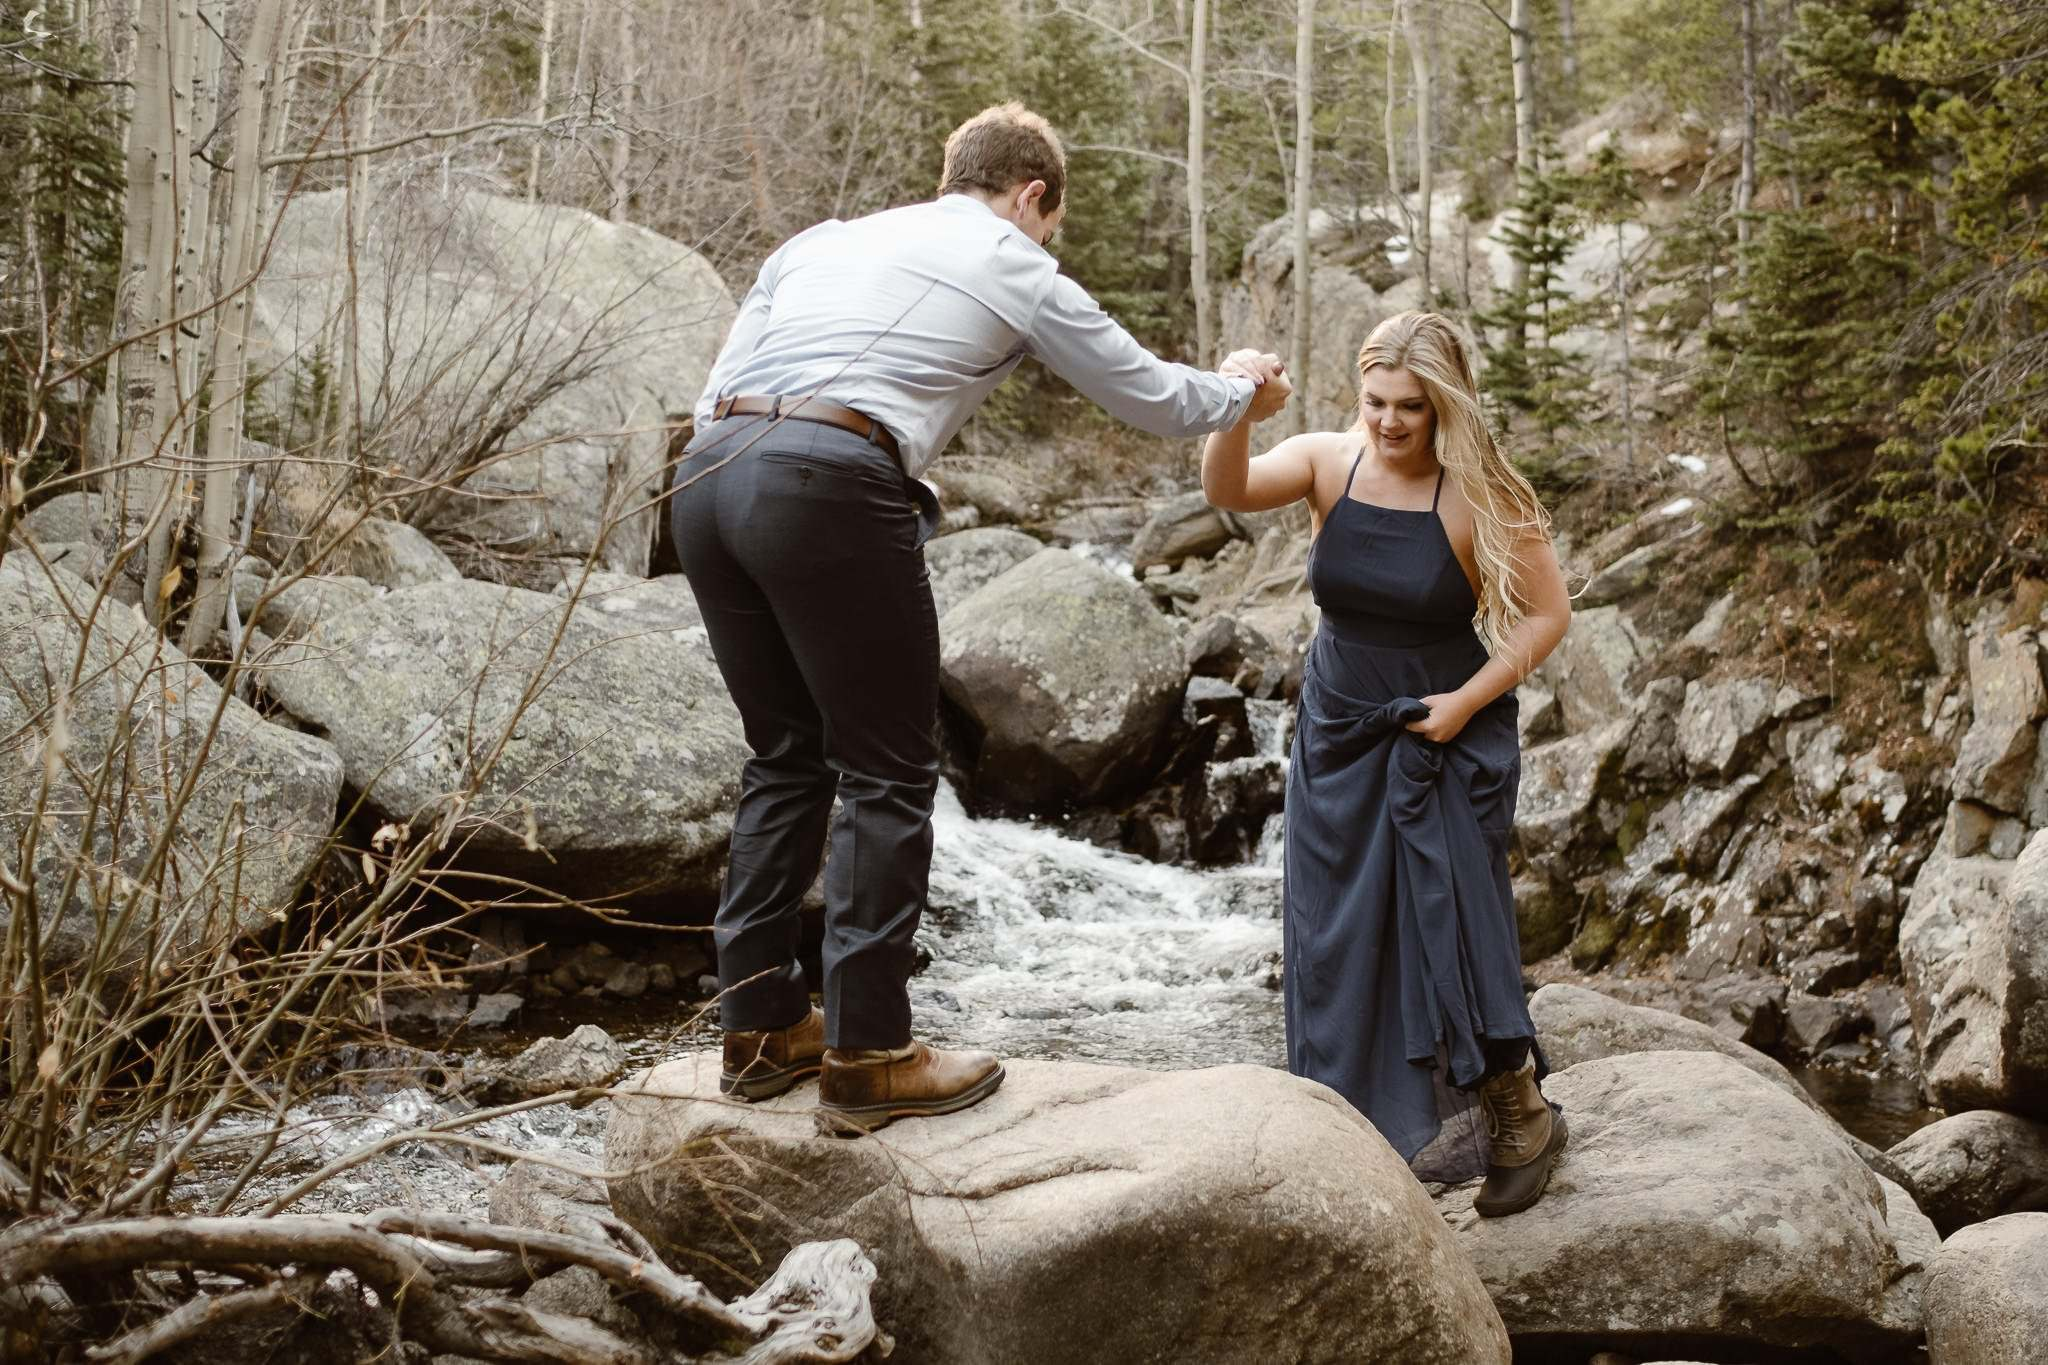 AMY+STEVEN'S HIKING ADVENTURE ROCKY MOUNTAIN NATIONAL PARK ADVENTURE | COLORADO ELOPEMENT PHOTOGRAPHER | DESTINATION ADVENTURE PHOTOGRAPHY